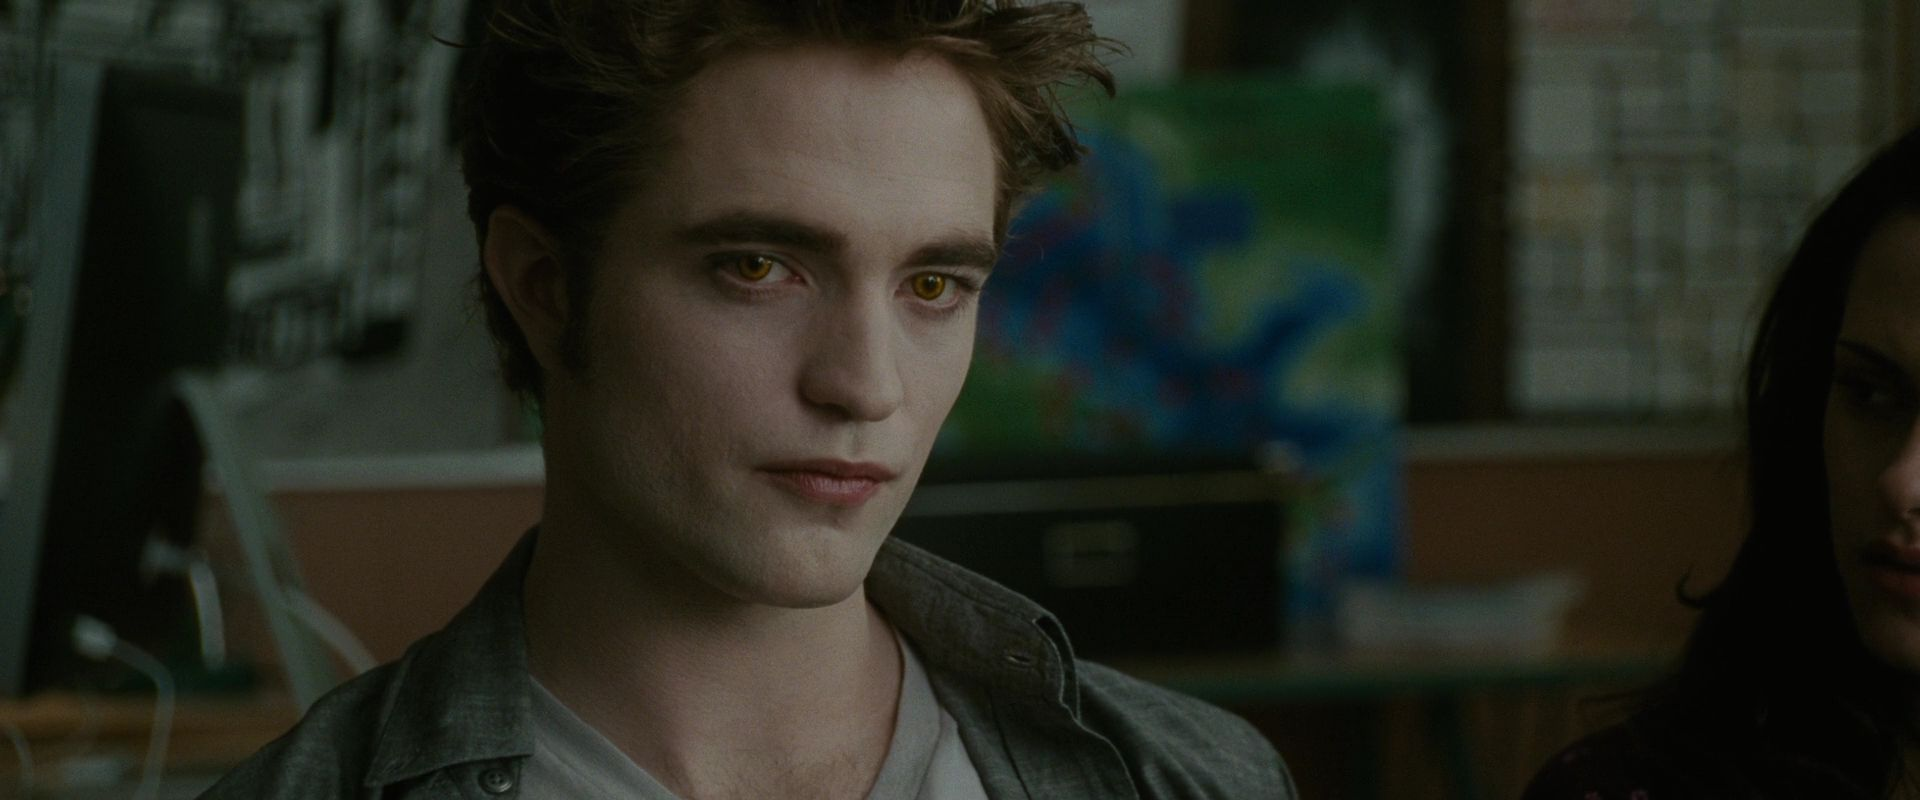 Edward Cullen - Edward Cullen Photo (18085421) - Fanpop